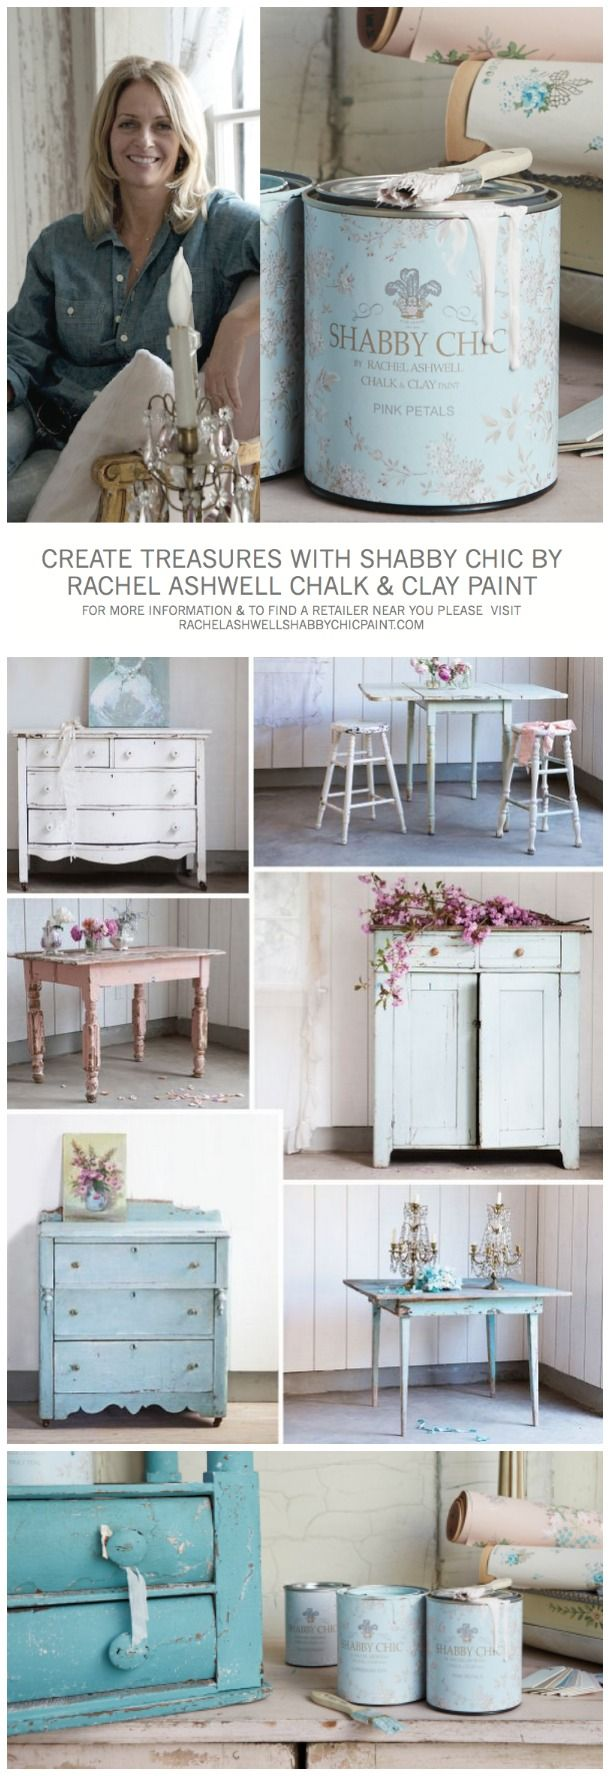 Recreating the Shabby Chic Look with Chalk and Clay Paint